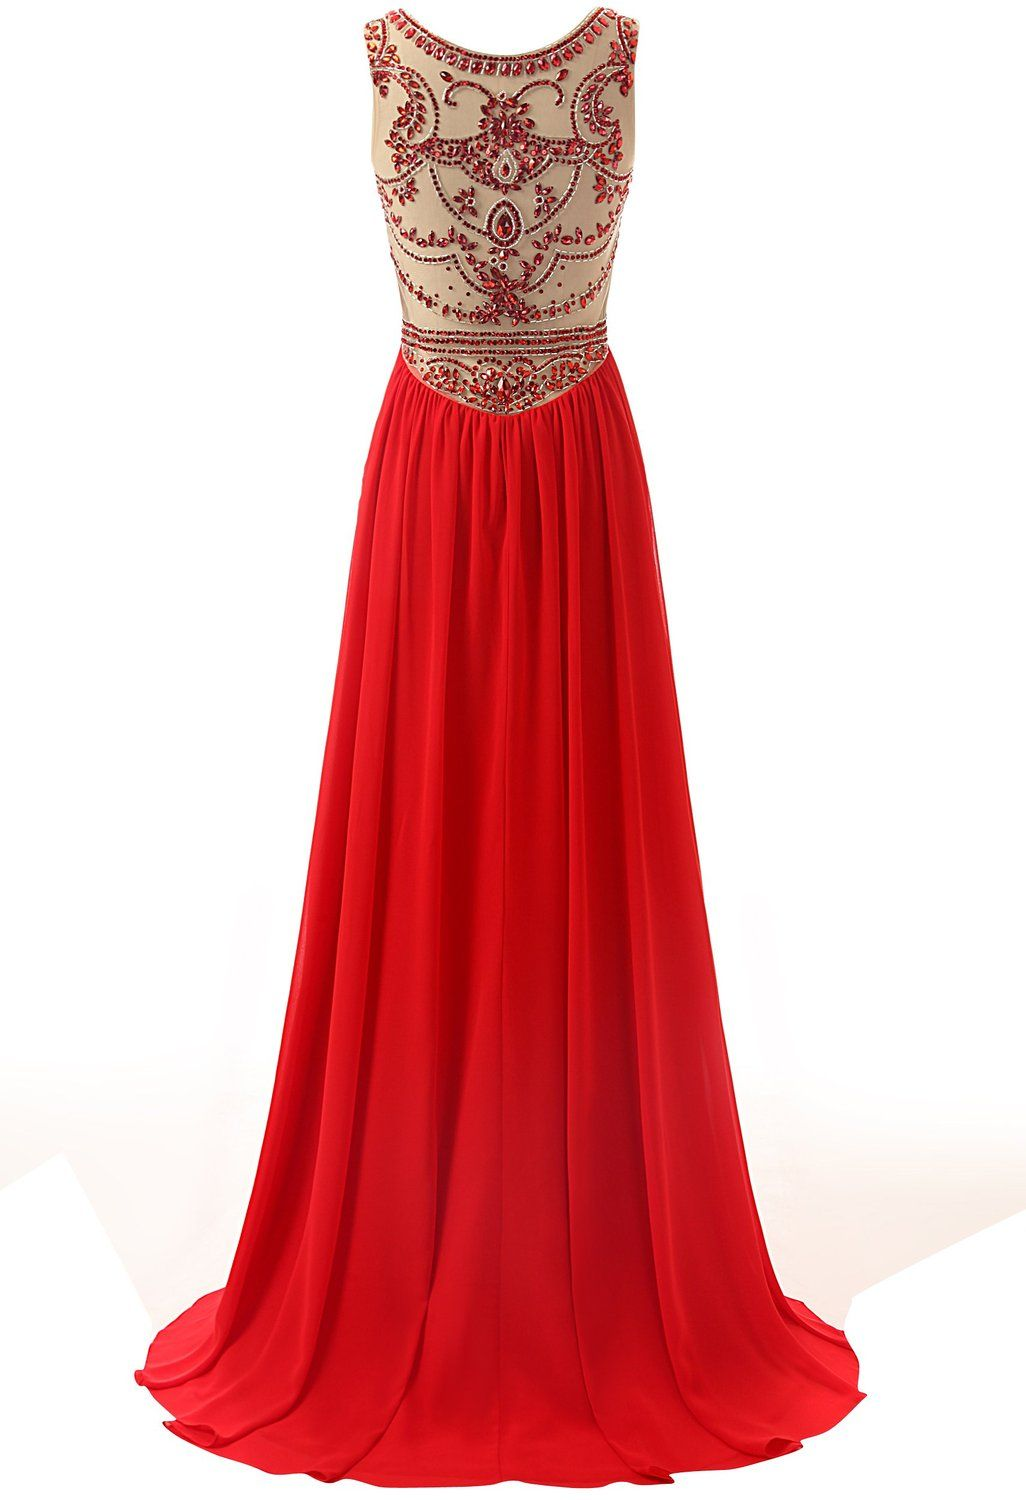 Red long prom dress handmade beadin beaded chiffon gowns and long